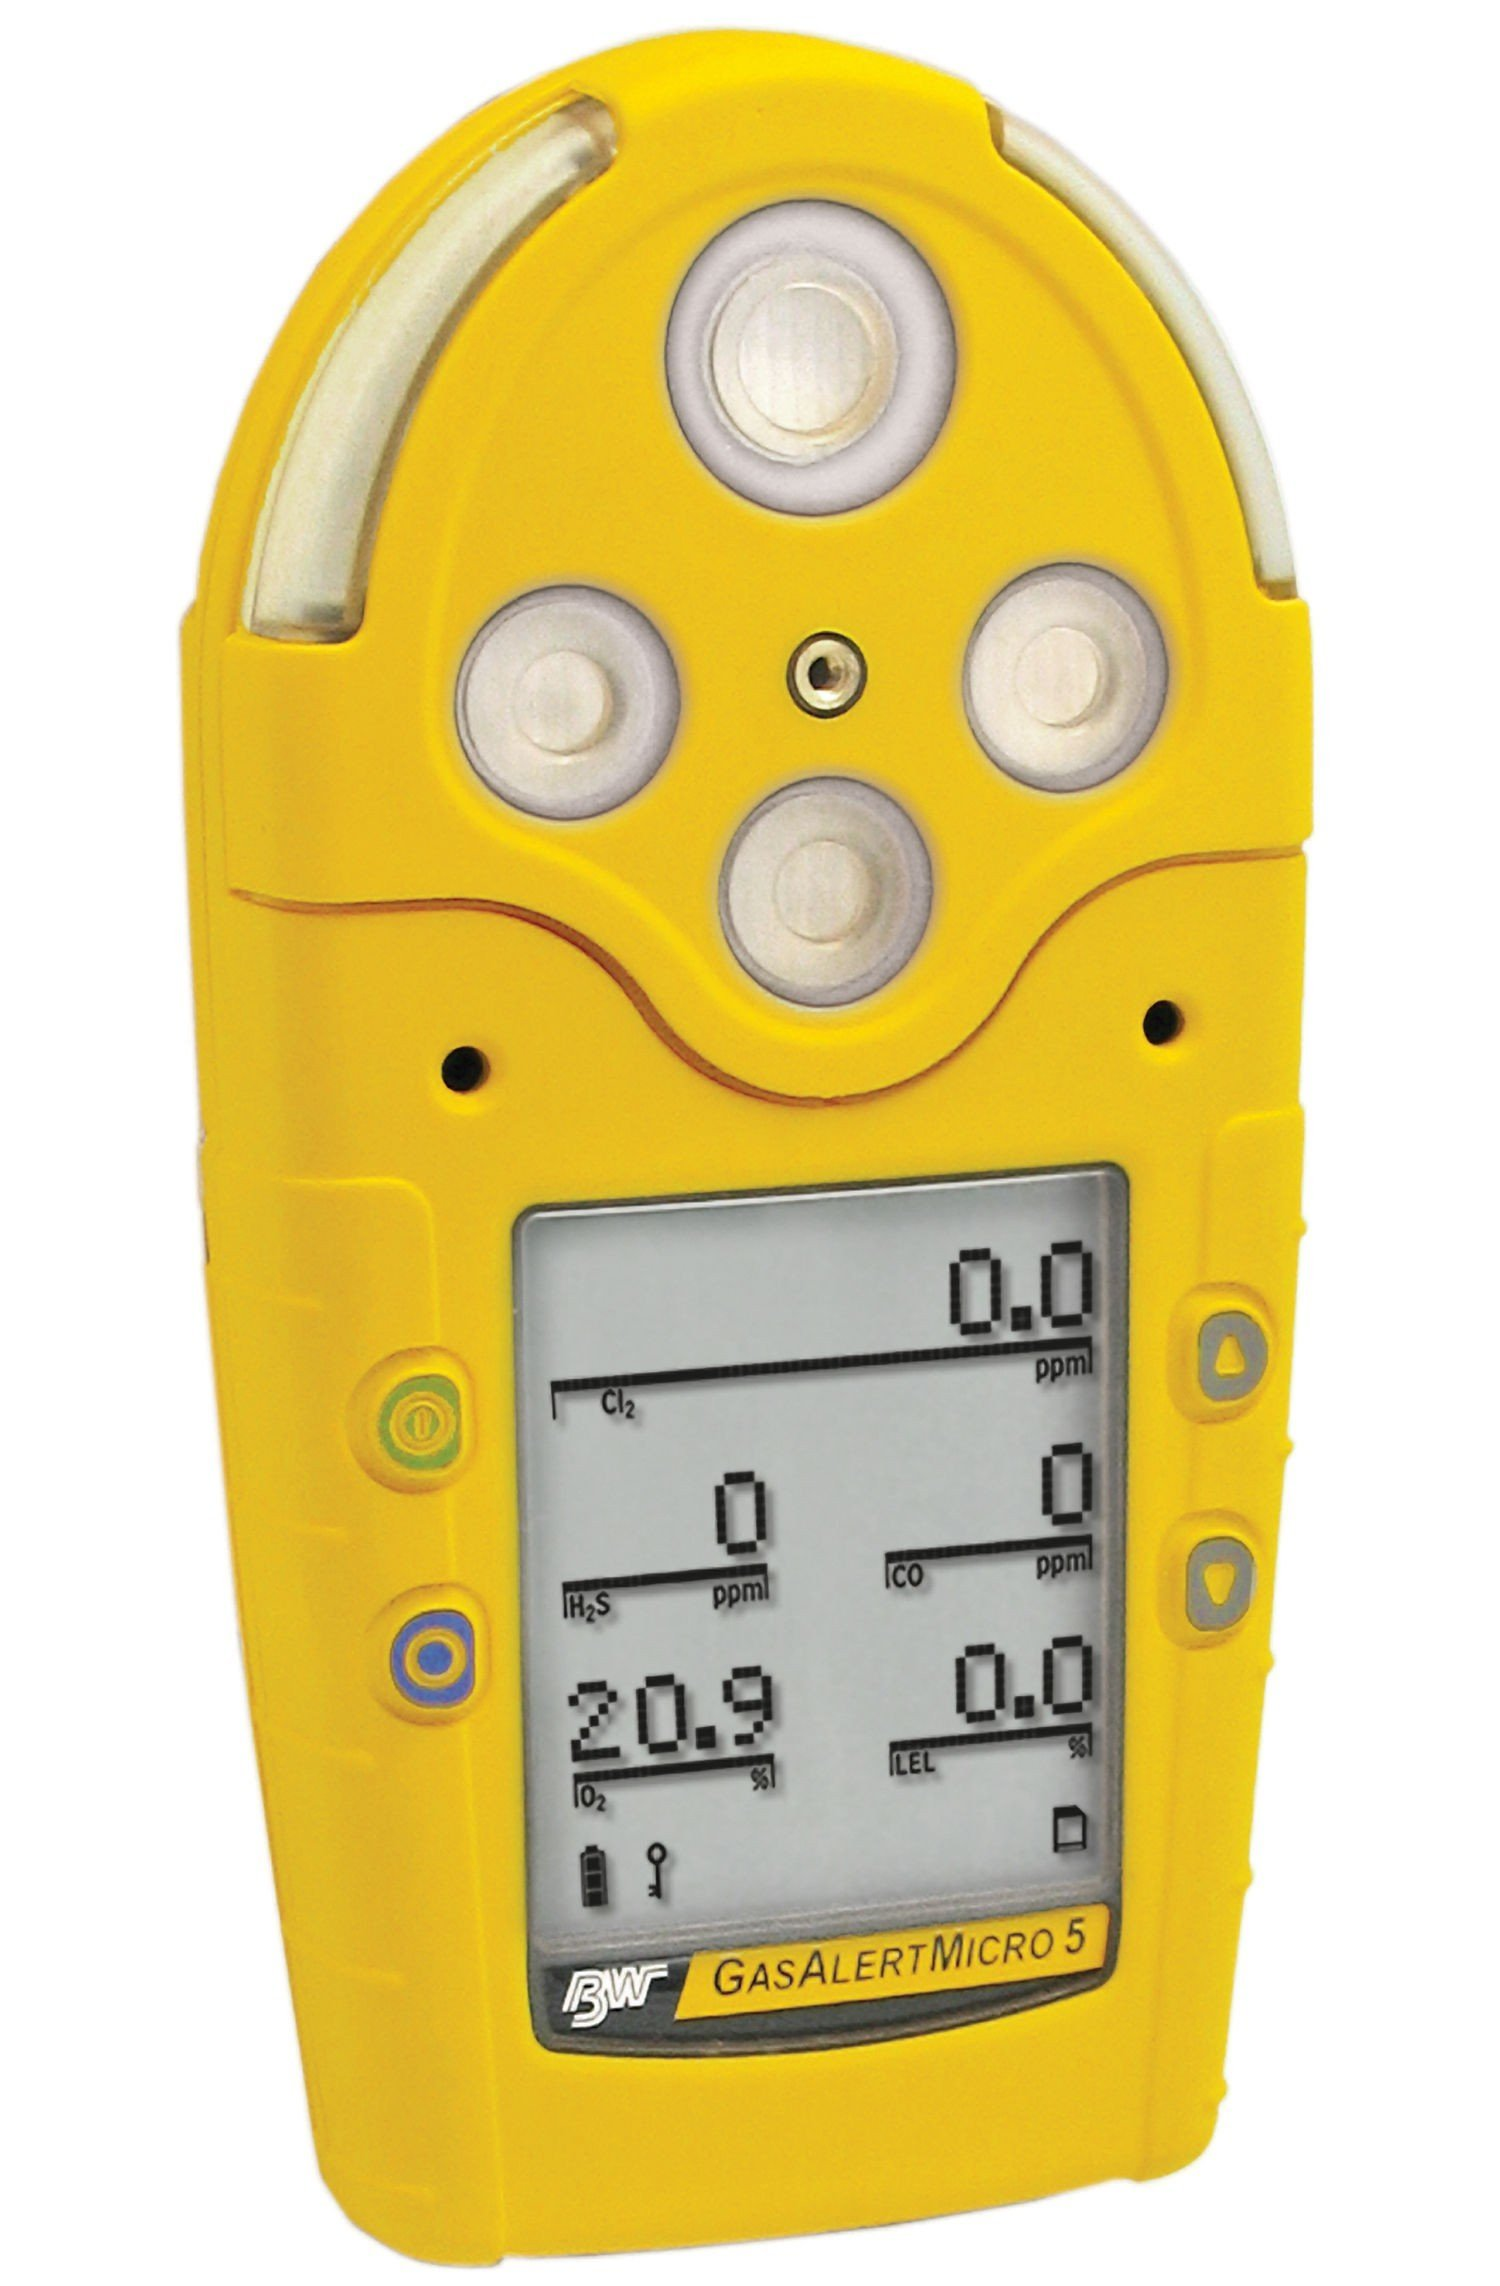 BW Technologies M5-XWAY-R-P-D-Y-N-00 GasAlertMicro 5 Gas Detector with Lithium Polymer Battery and Pump, Combustible, O2, H2S, CO, NH3, Yellow Housing